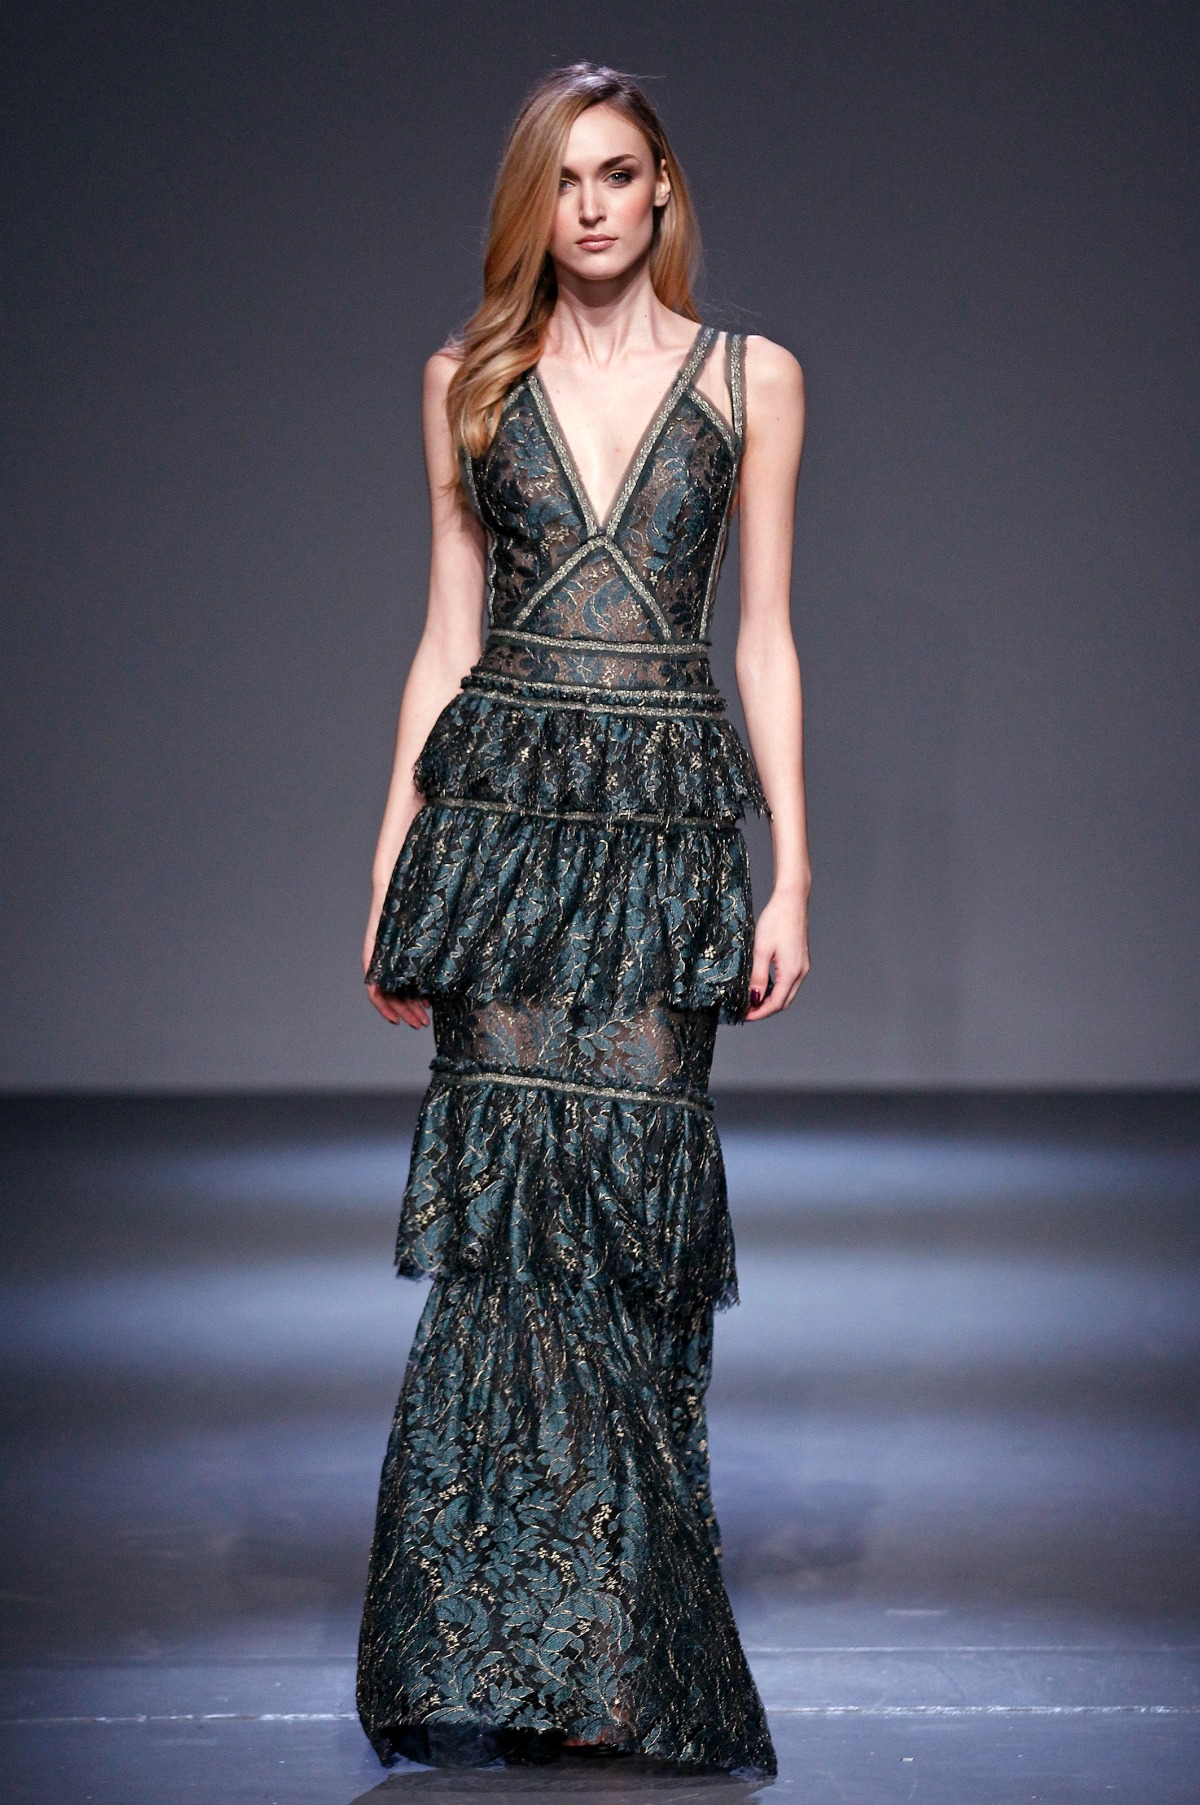 Pamella Roland Fall 2018 Runway I Metallic Lace Gown #NYFW #FallFashion